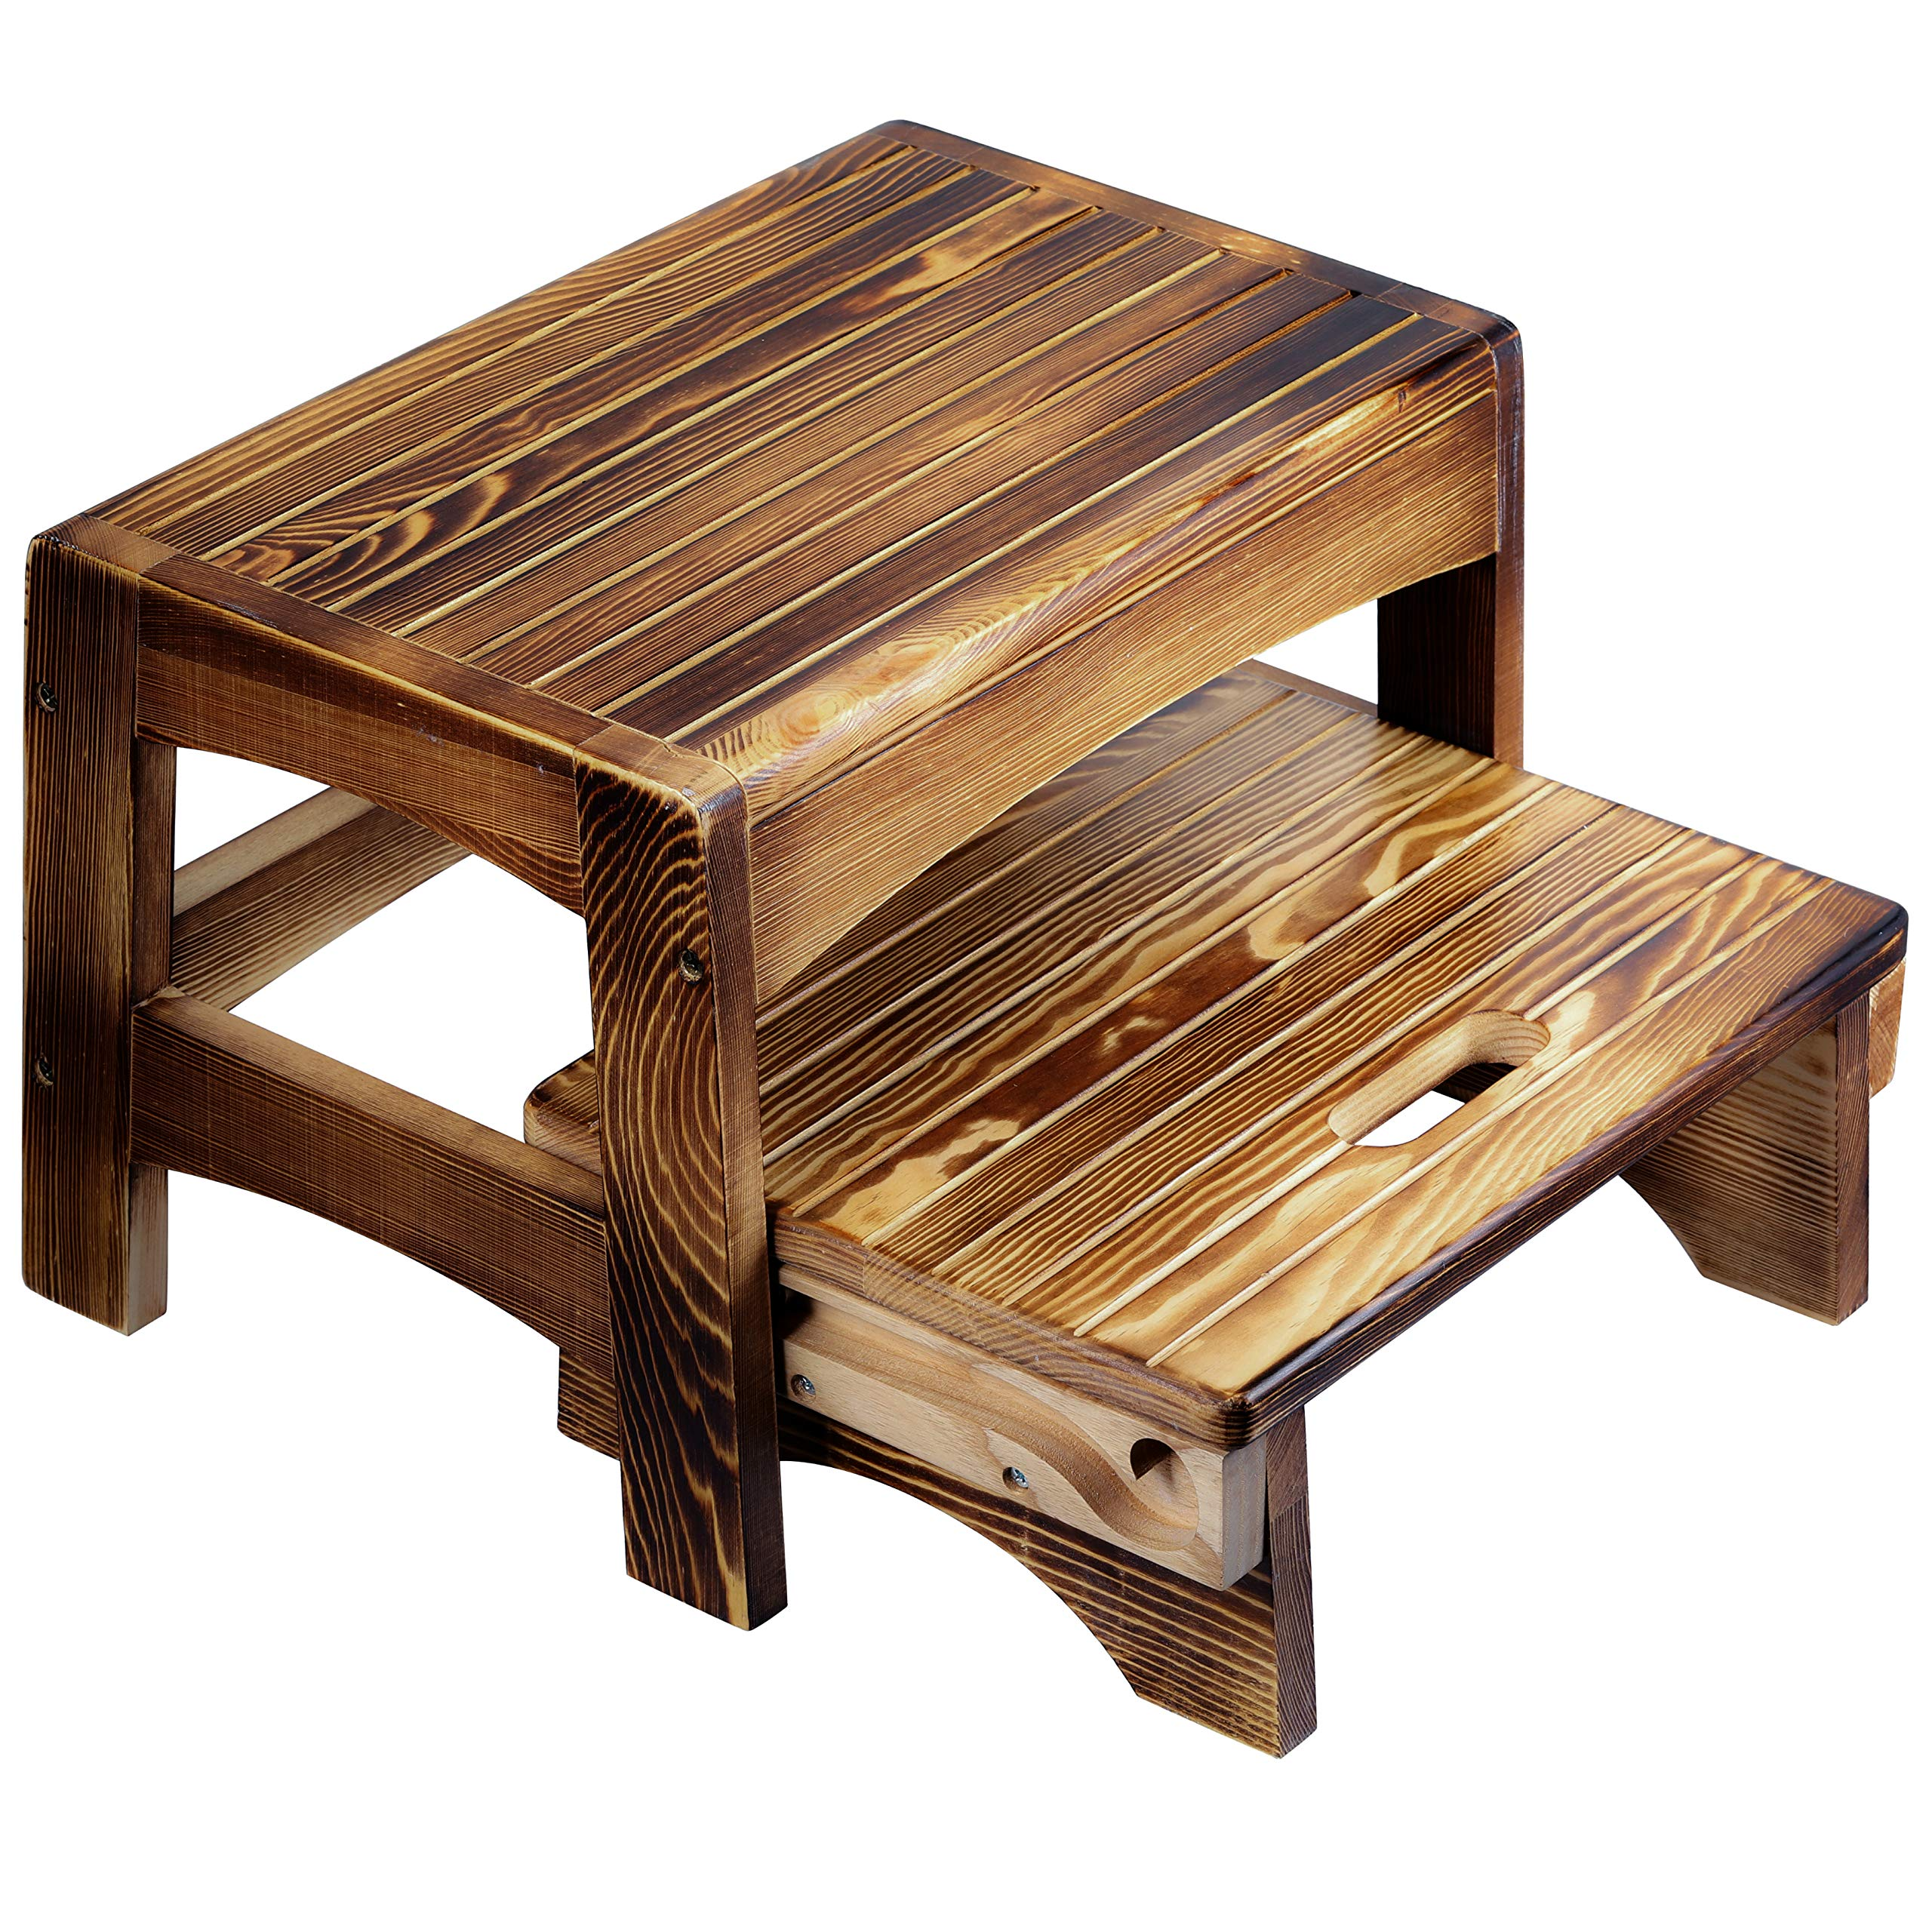 Amazon Com Urforestic Handcrafted 100 Solid Wood Bed Step Stool Foot Stool Kitchen Stools Bed Steps Small Step Ladder Bathroom Stools Burned Kitchen Dining